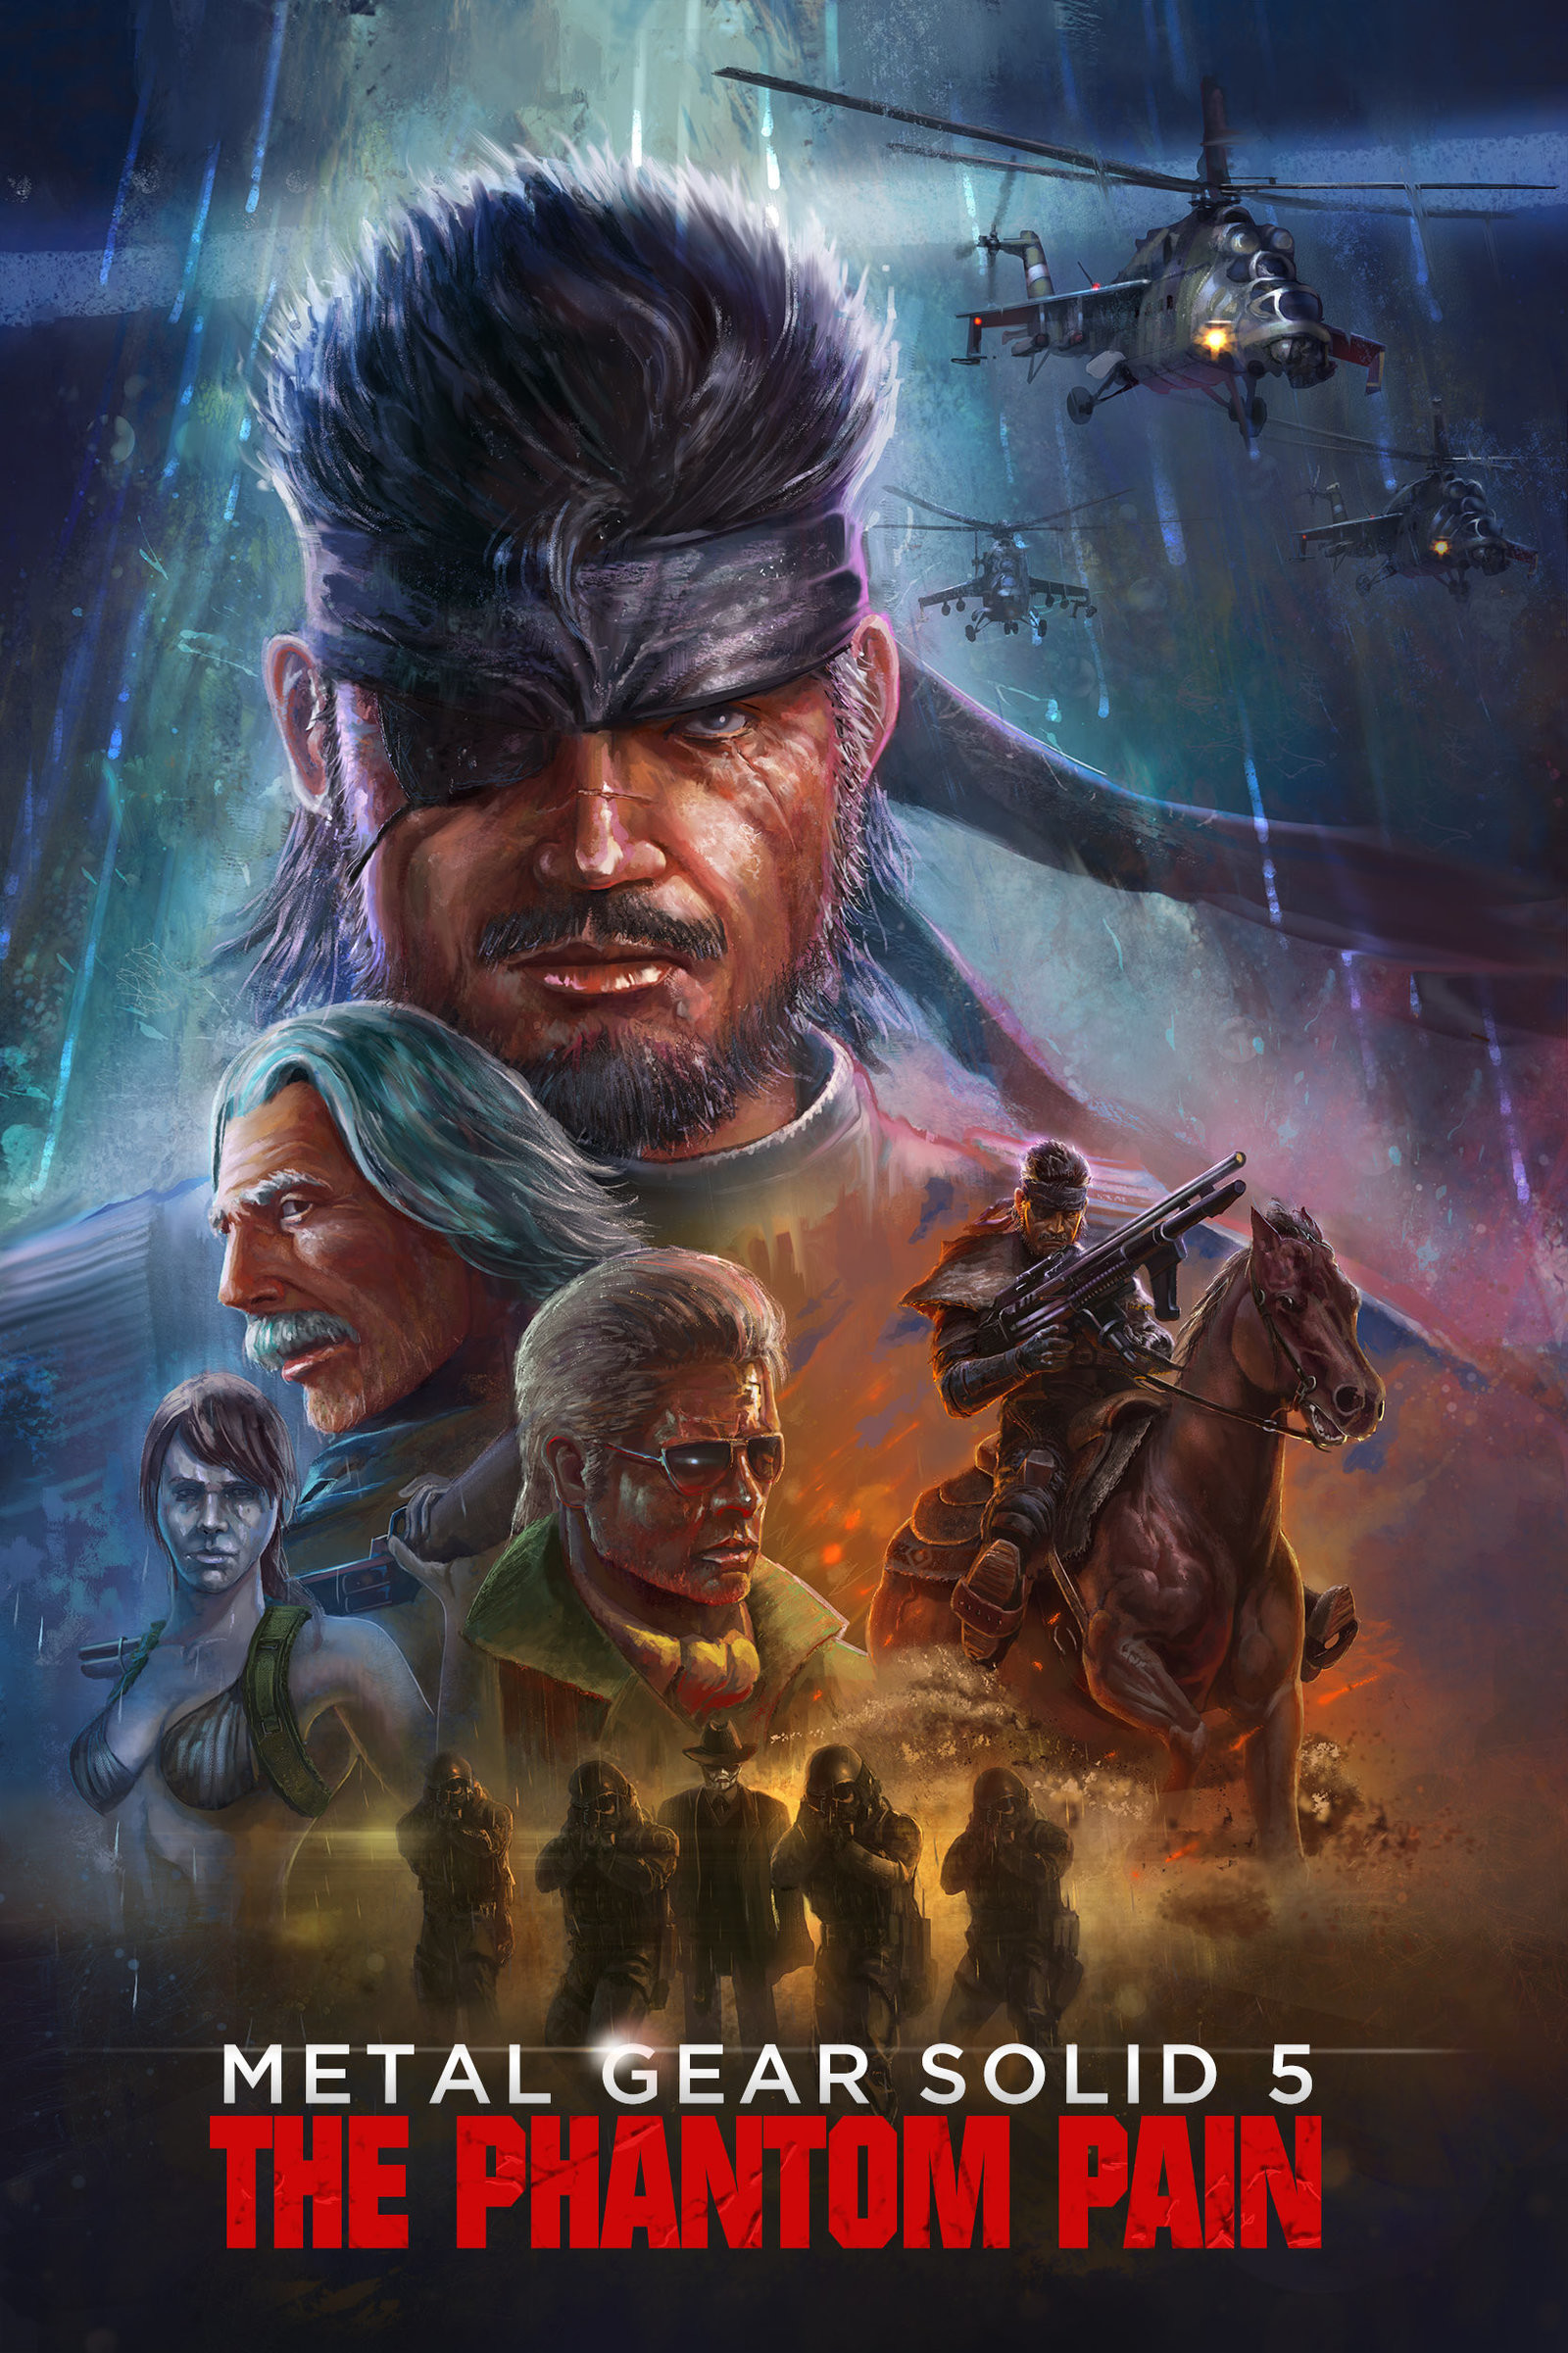 mgs 5 the vhs cover